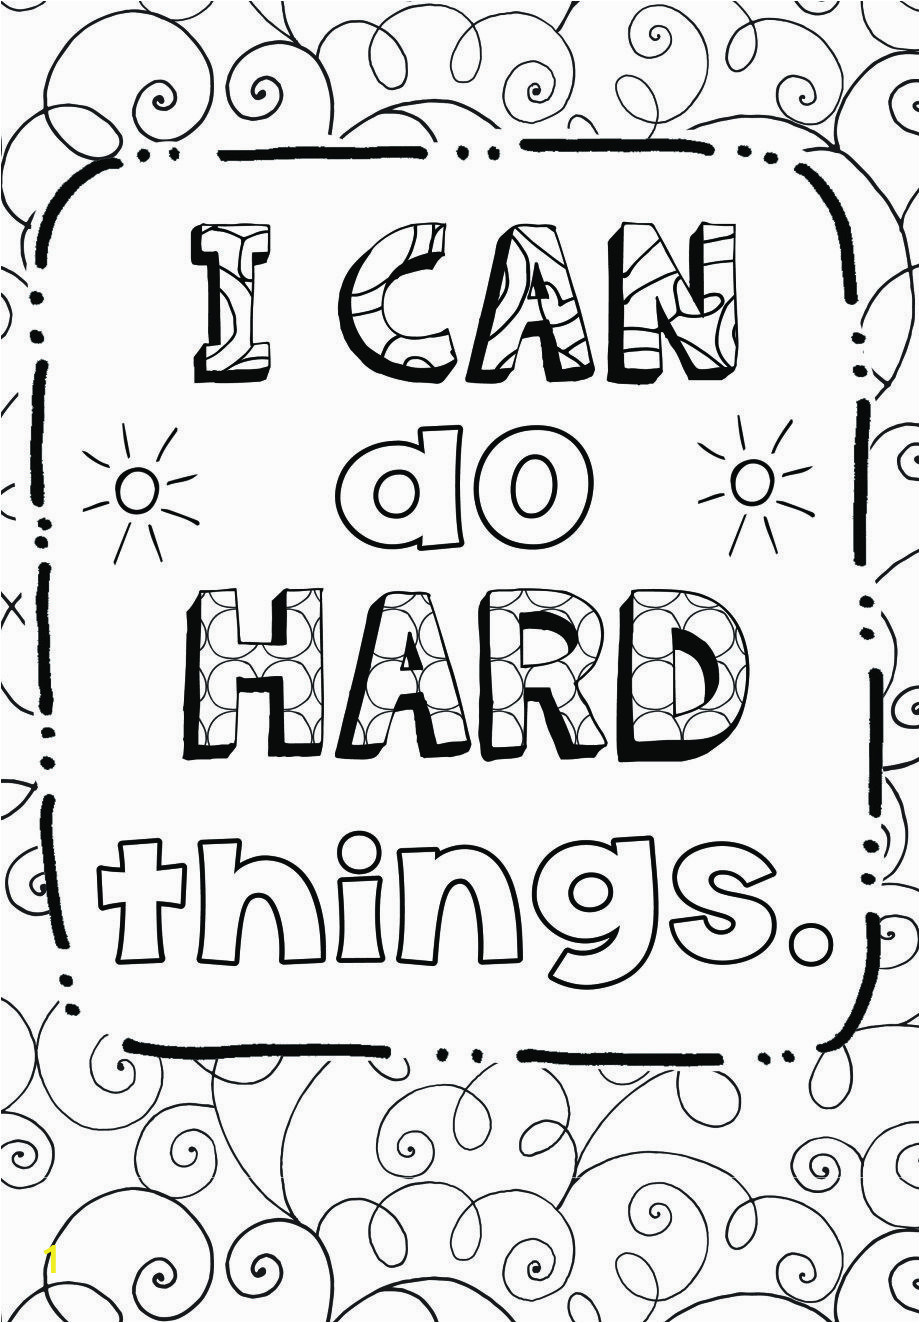 Coping Skills Coloring Pages Free Coloring Page Growth Mindset Growth Mindset